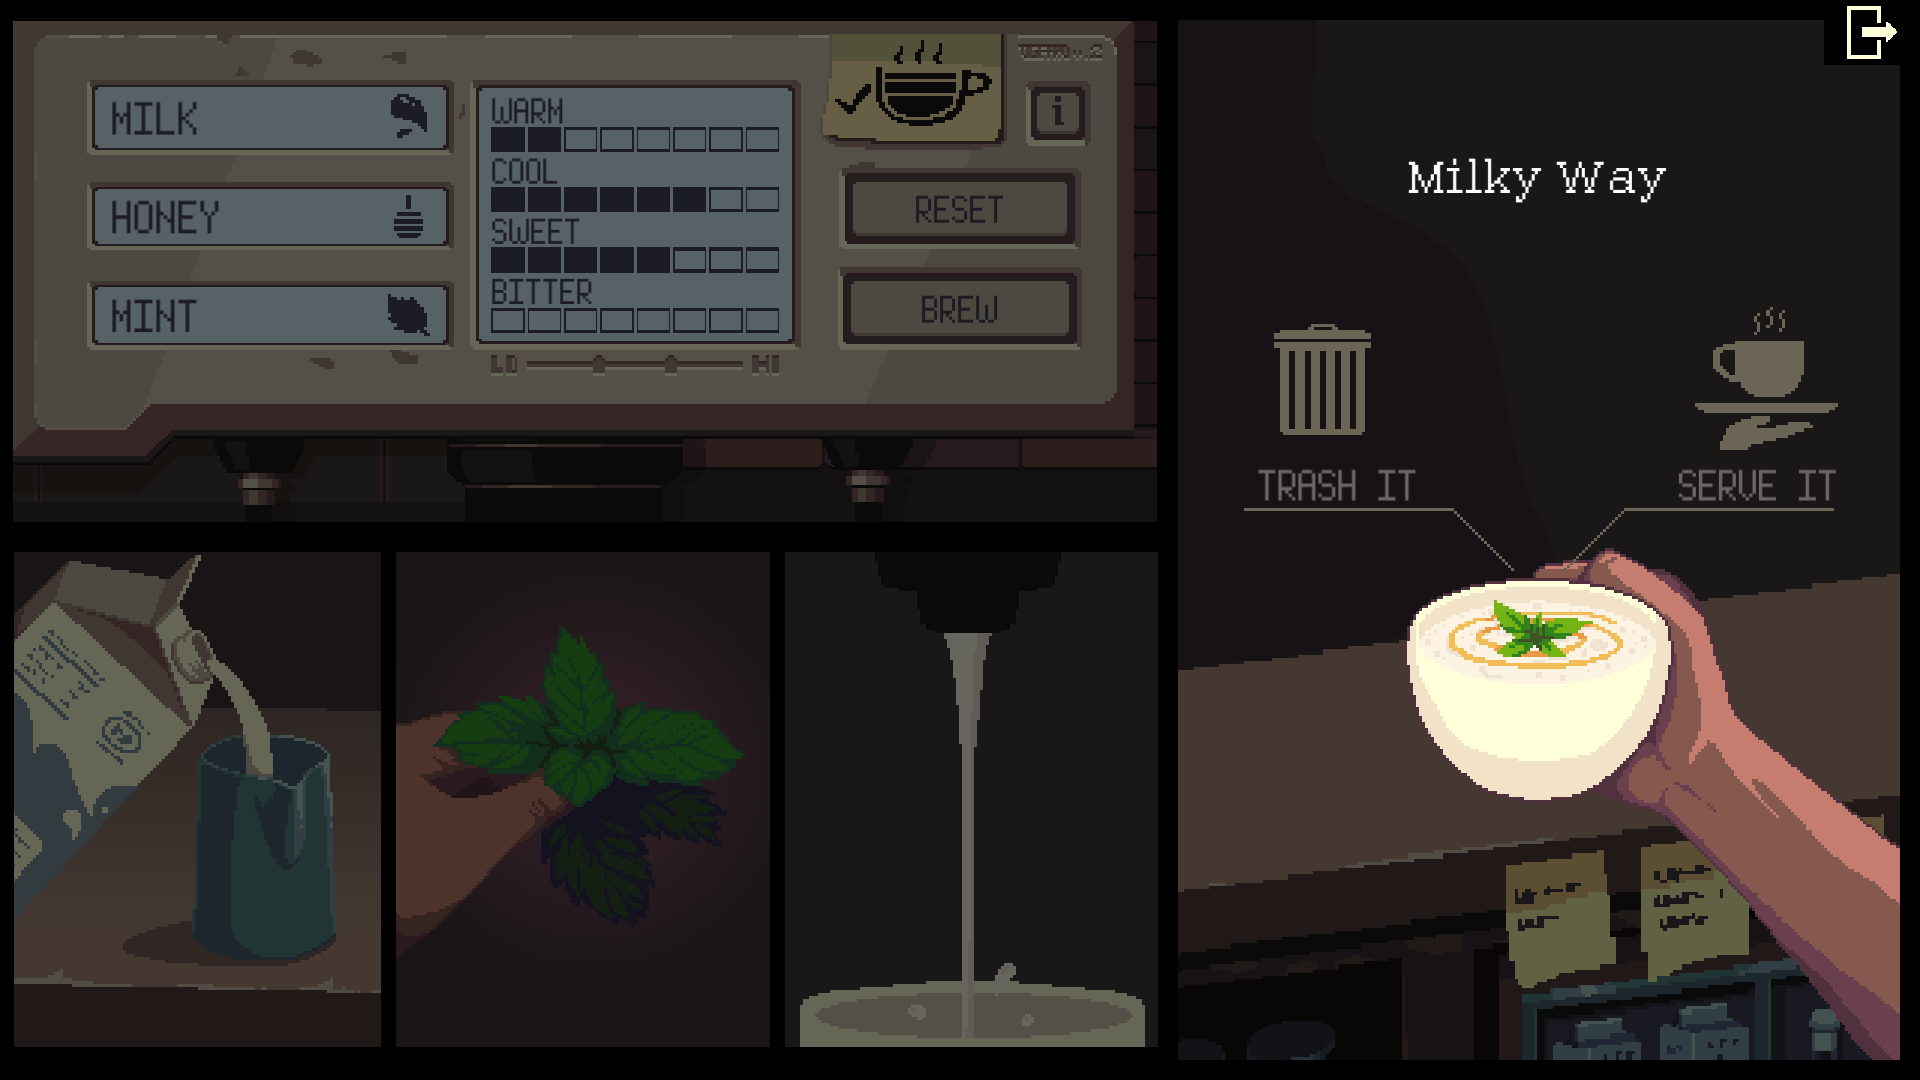 Milky Way recipe is milk, honey and mint on the Coffee Talk video game.